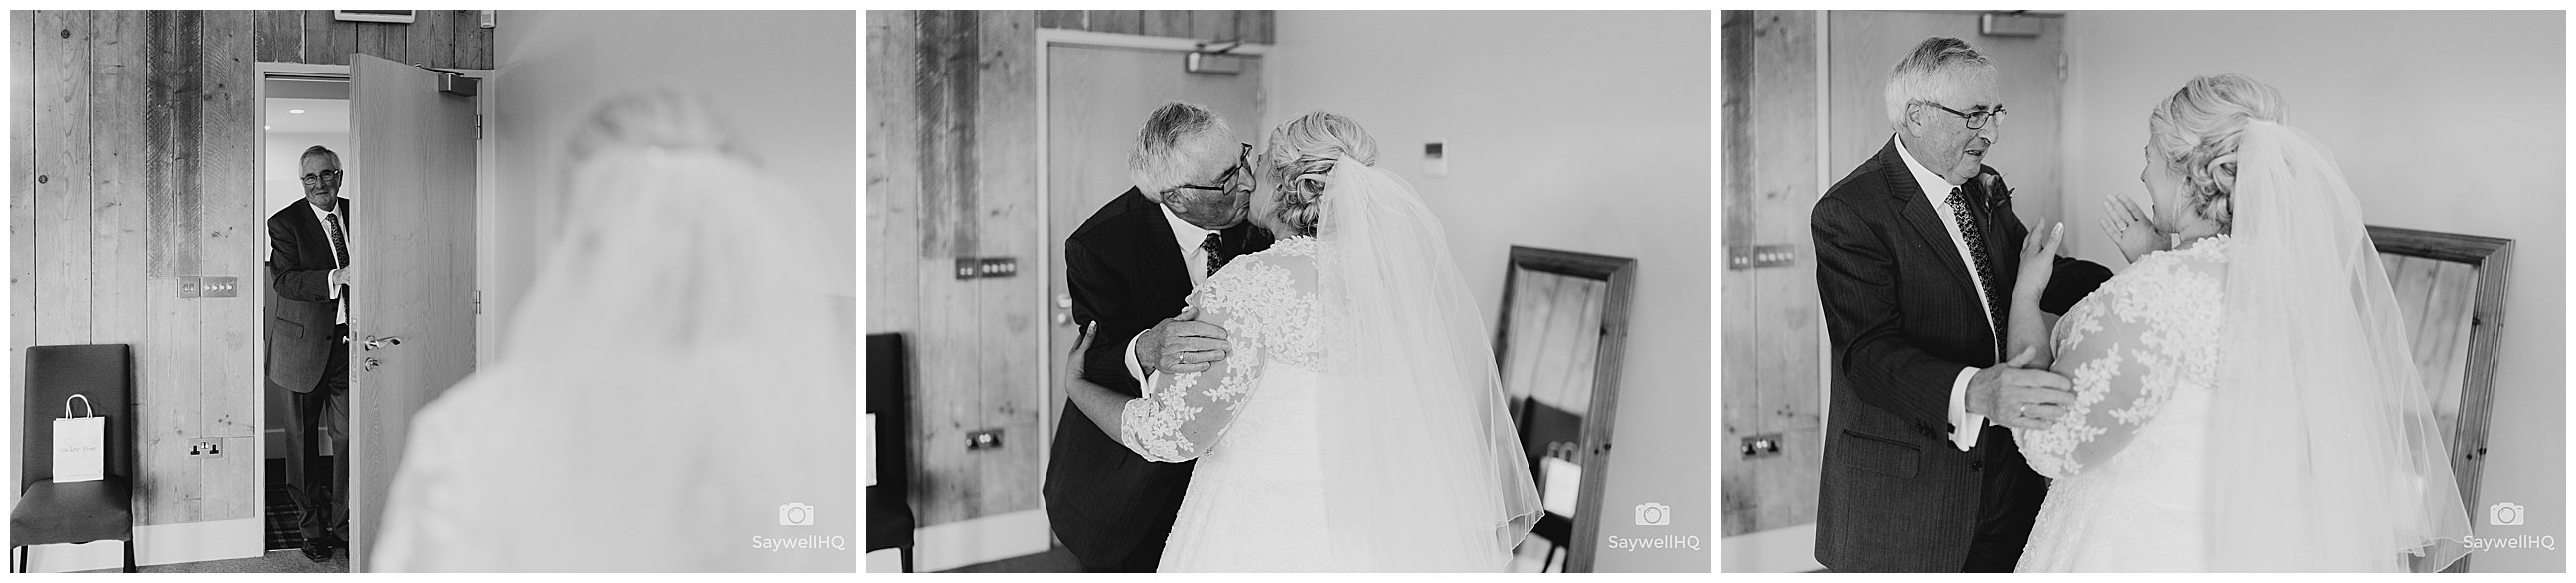 Wedding photography at Carriage Hall in Nottingham + Brides sees for dad for the first time in her wedding dress